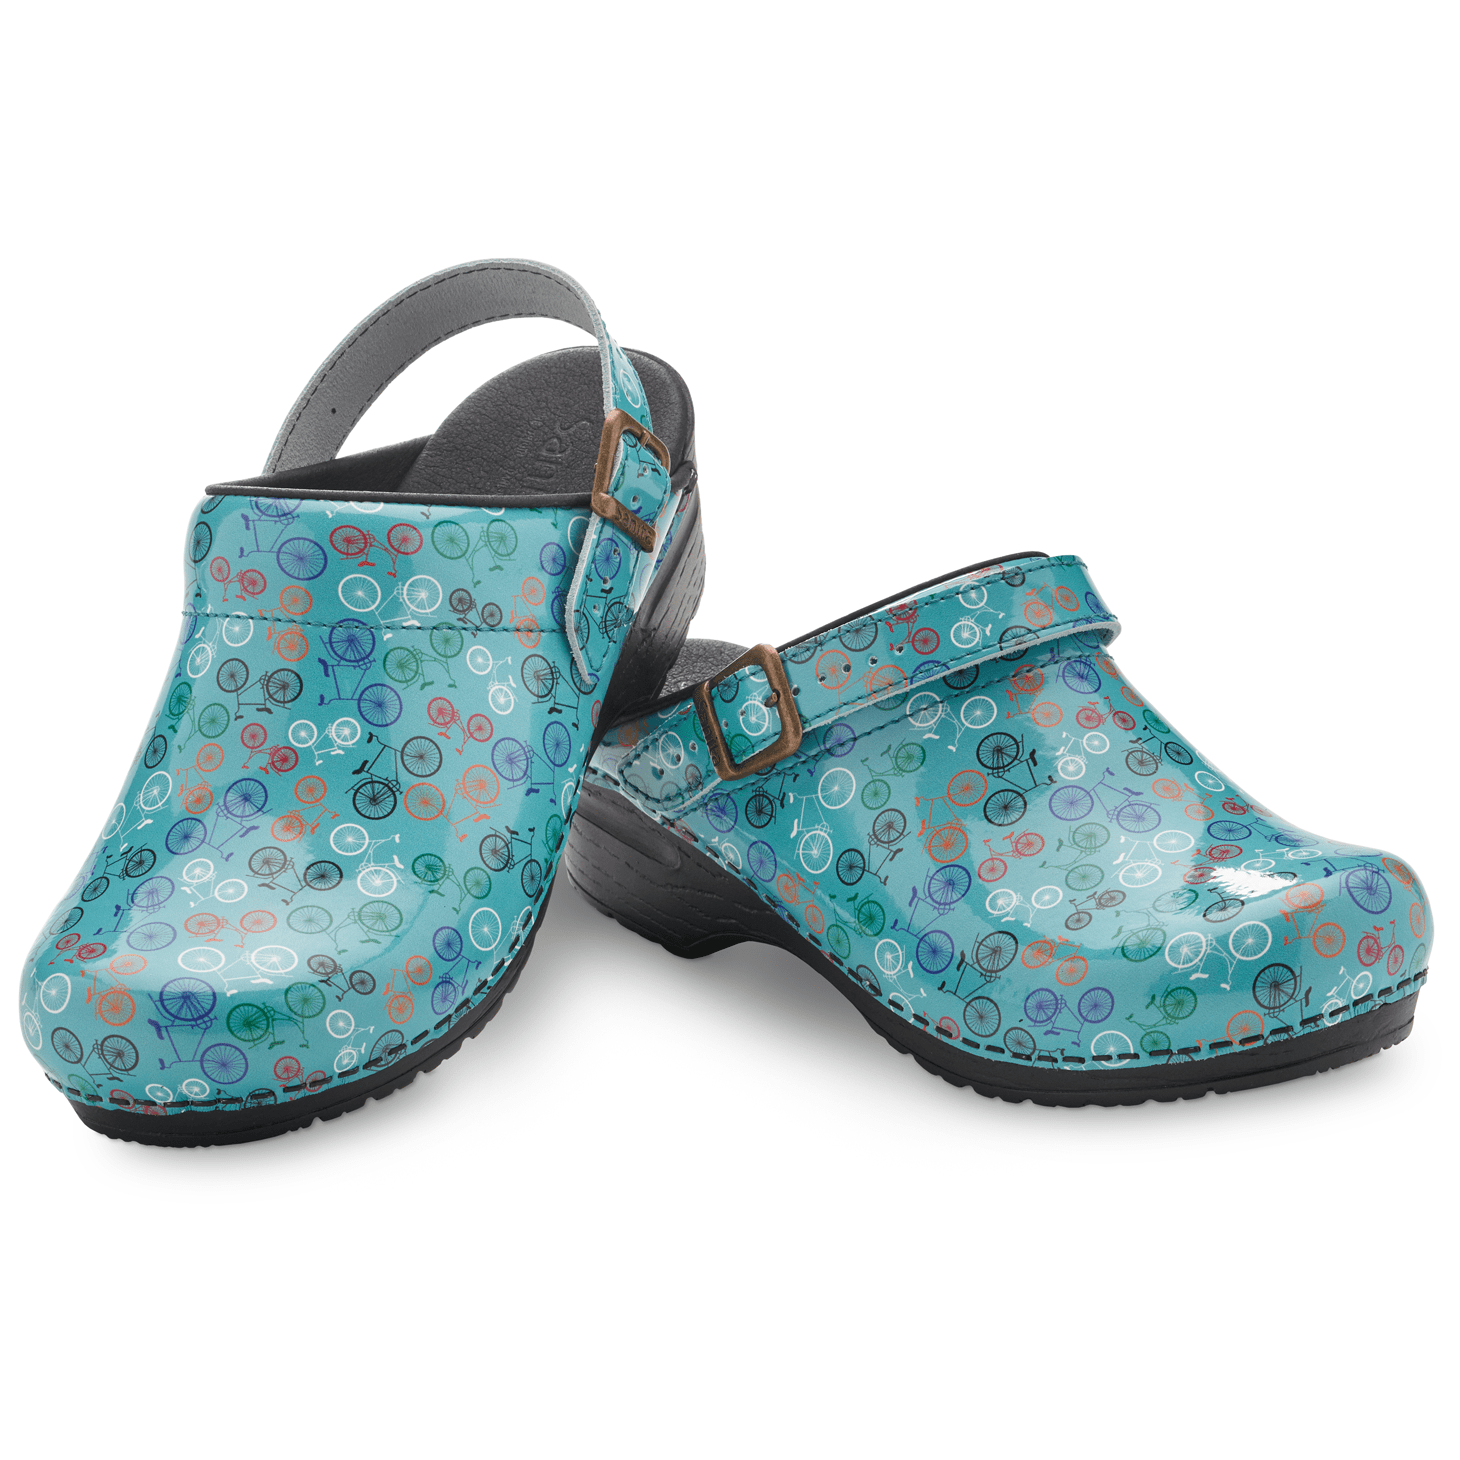 Sanita Estelle Women's in Teal Open Back Clog